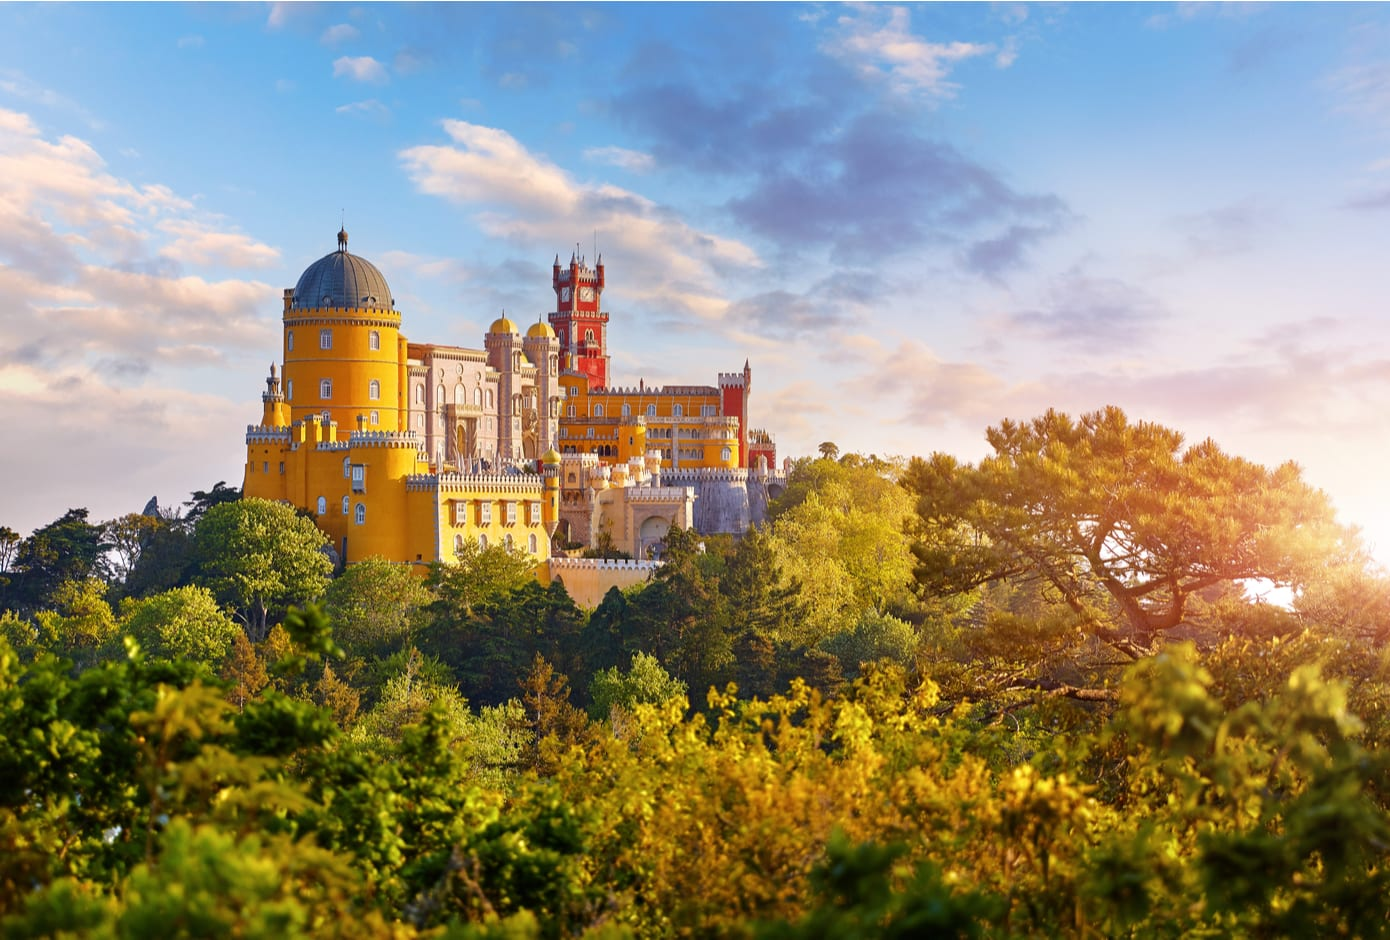 National Palace of Pena in Sintra,  Portugal.